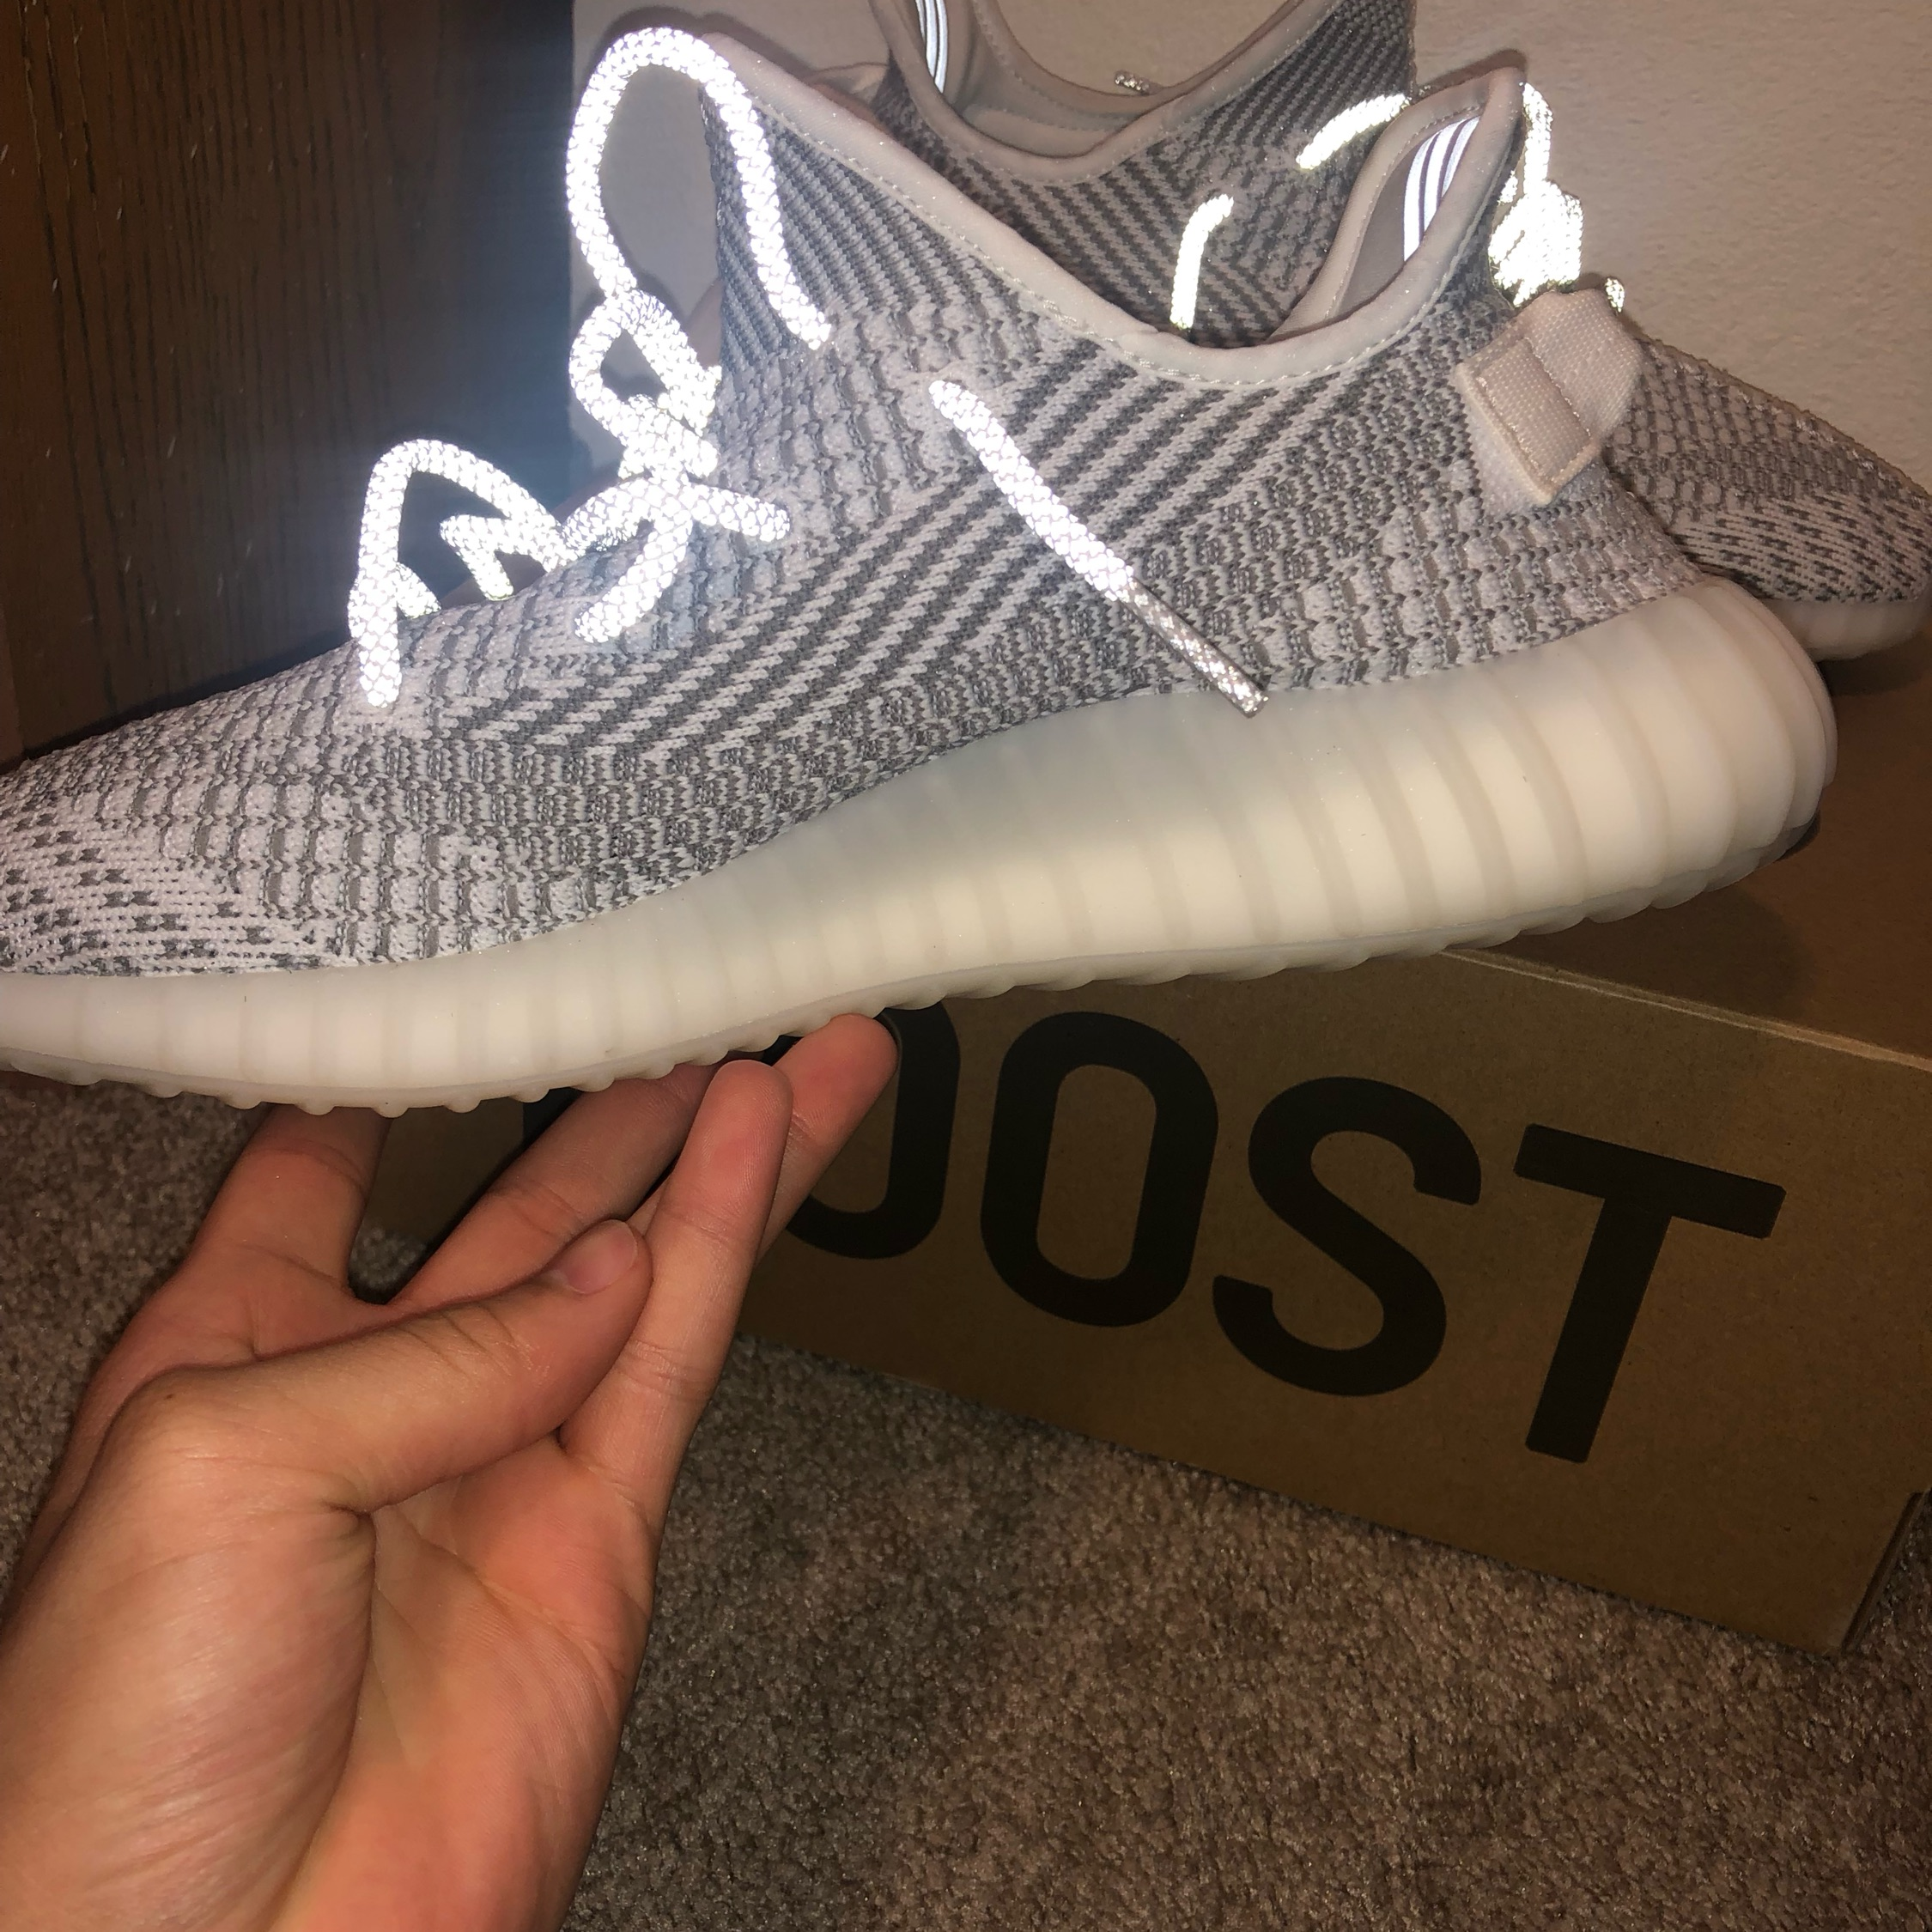 newest 157a9 a1a19 Adidas Yeezy Boost 350 V2 Static Non-Reflective